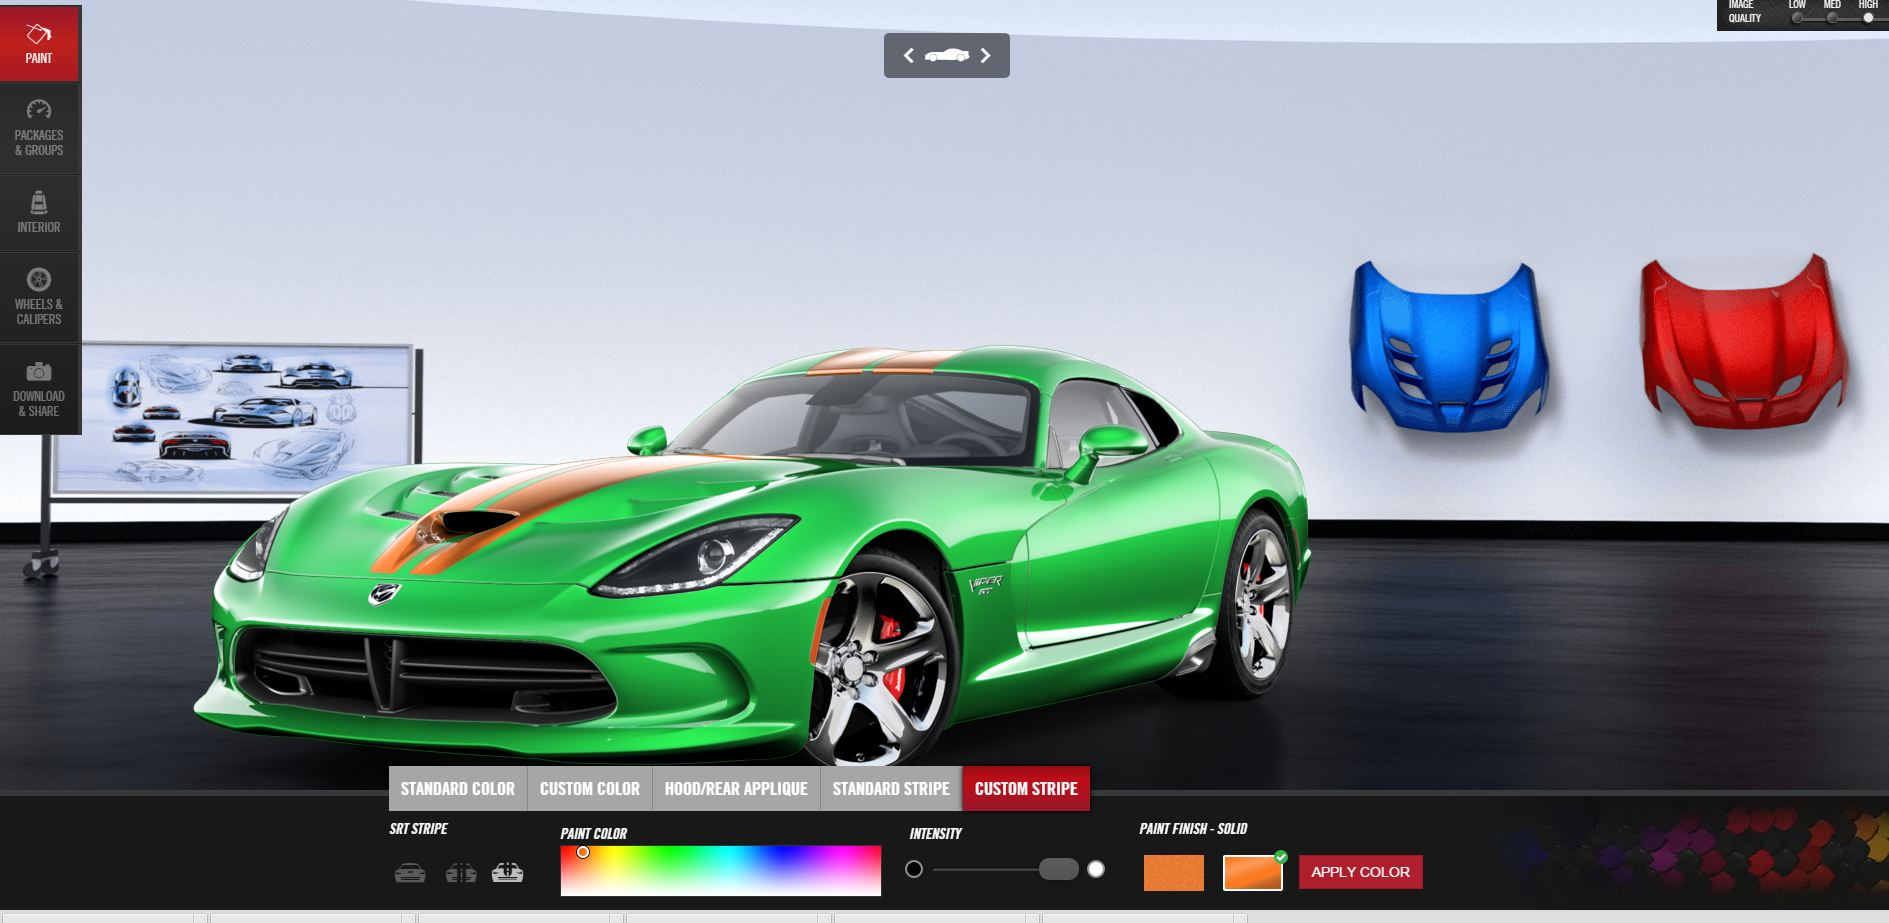 Use the Online Viper GTC Customizer to Build Your 1-of-1 Dream Car ...